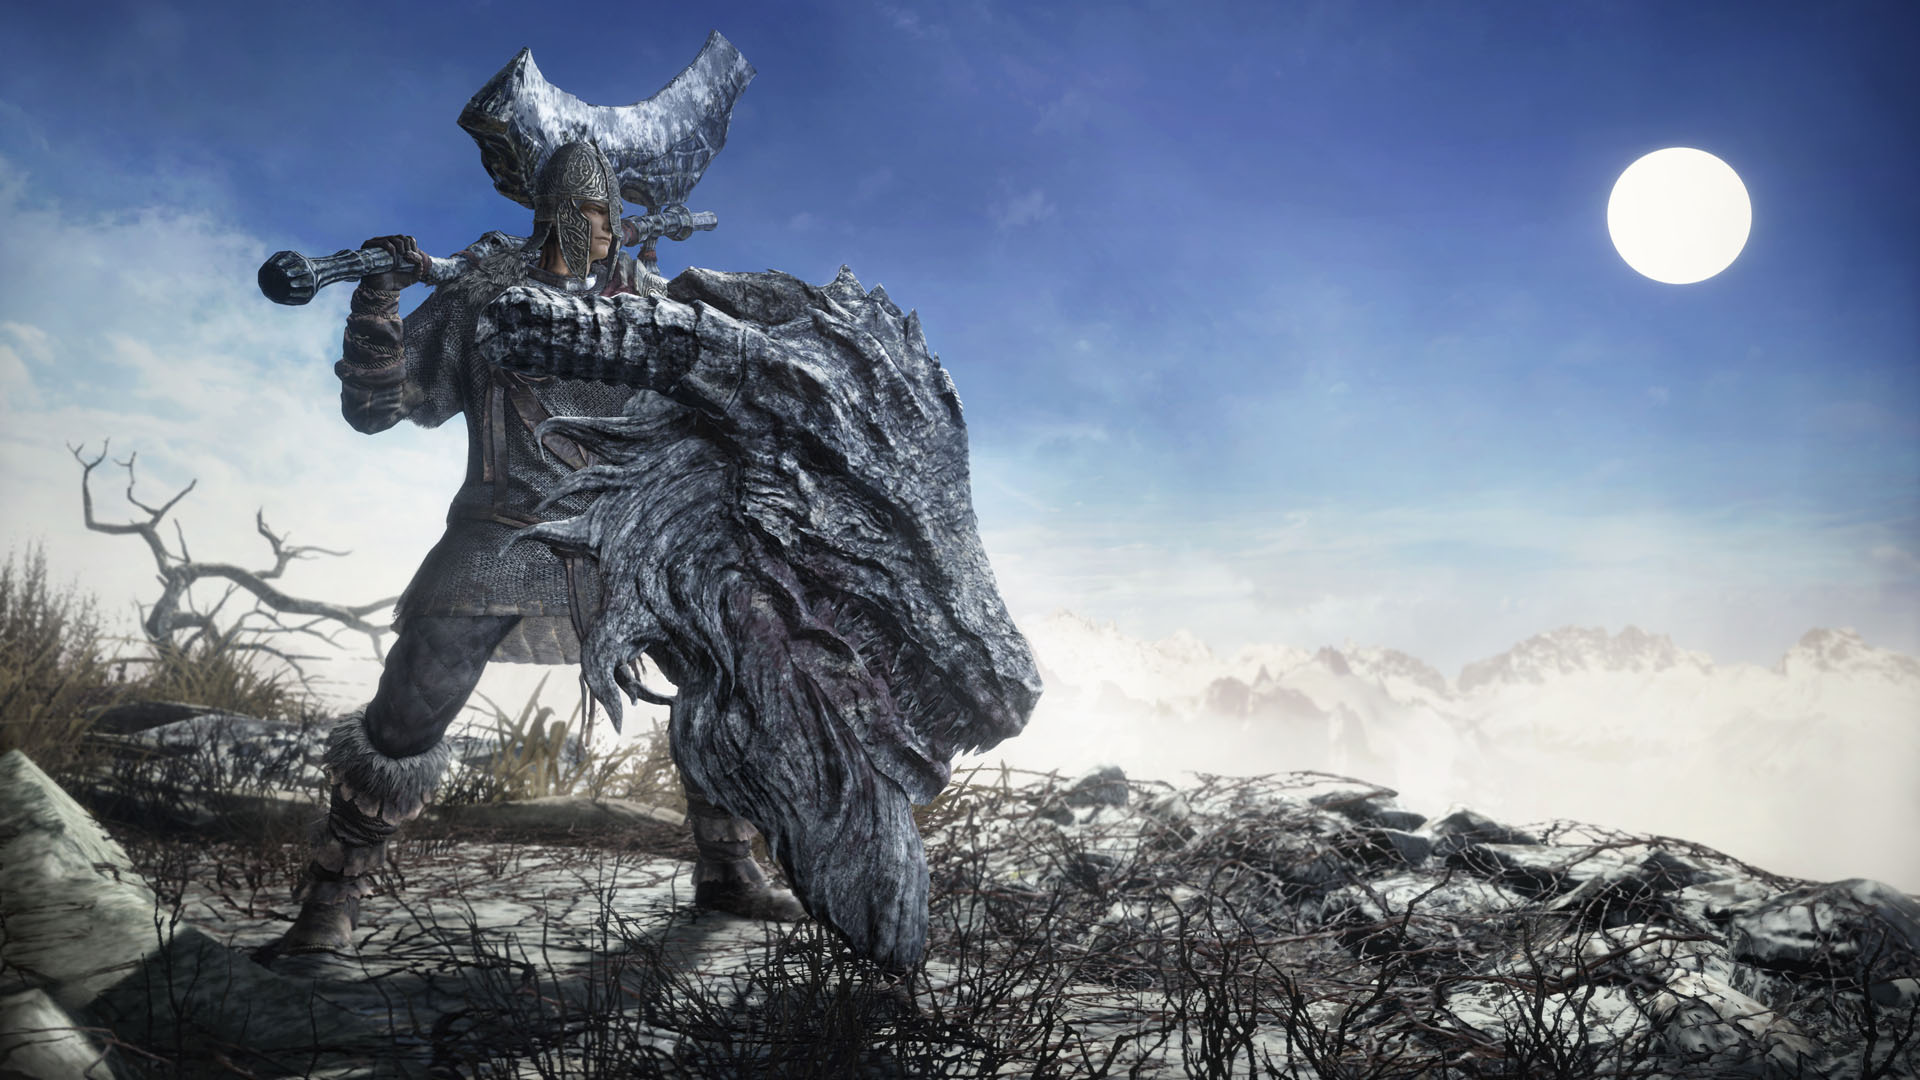 Dark Souls III: The Ringed City image 1